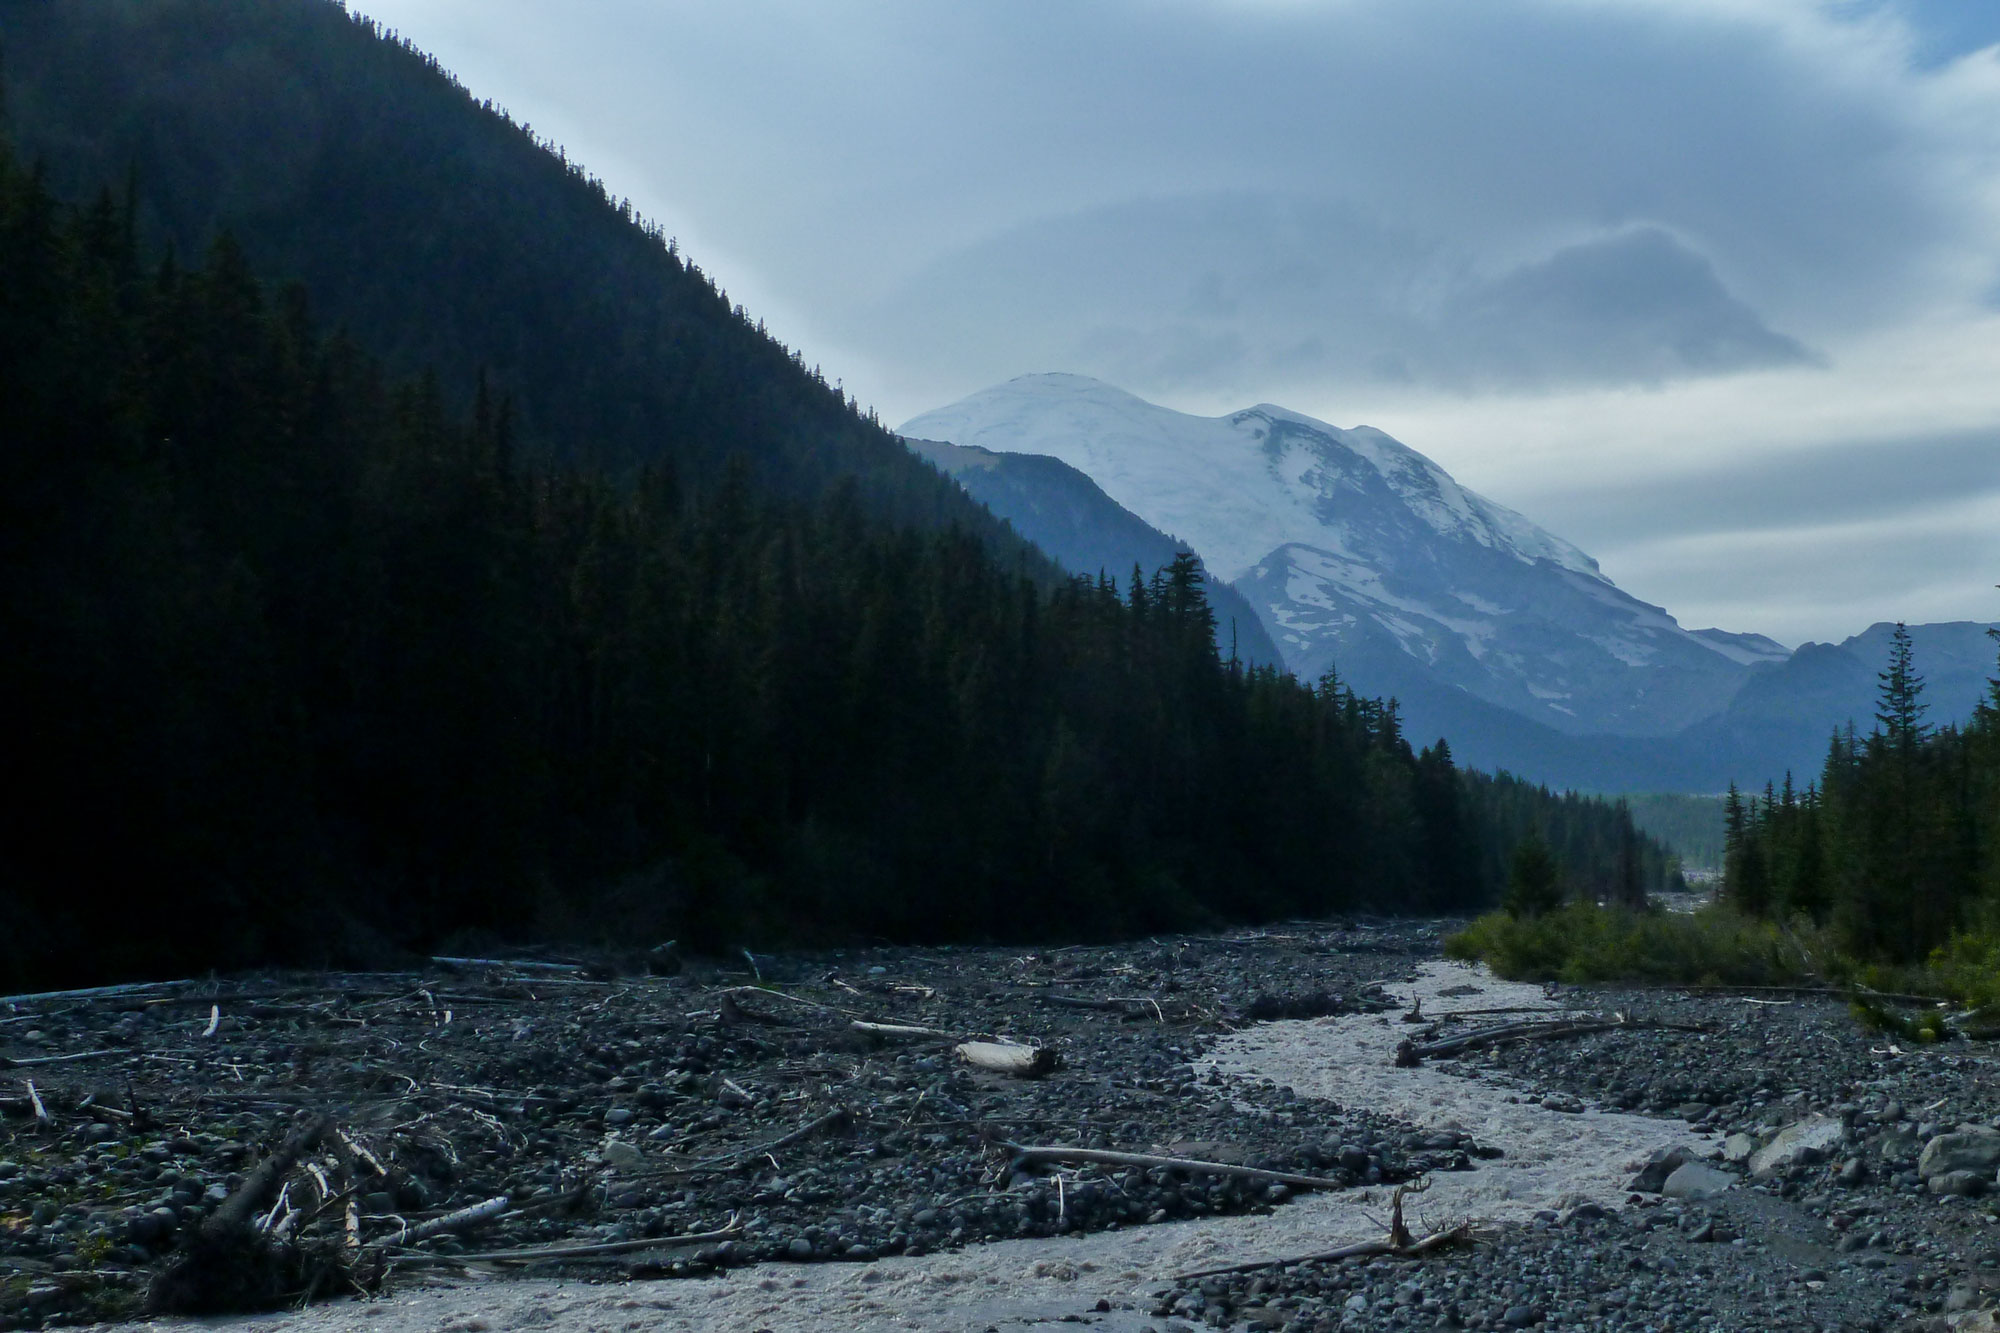 Mount Rainier from the White River. 2011